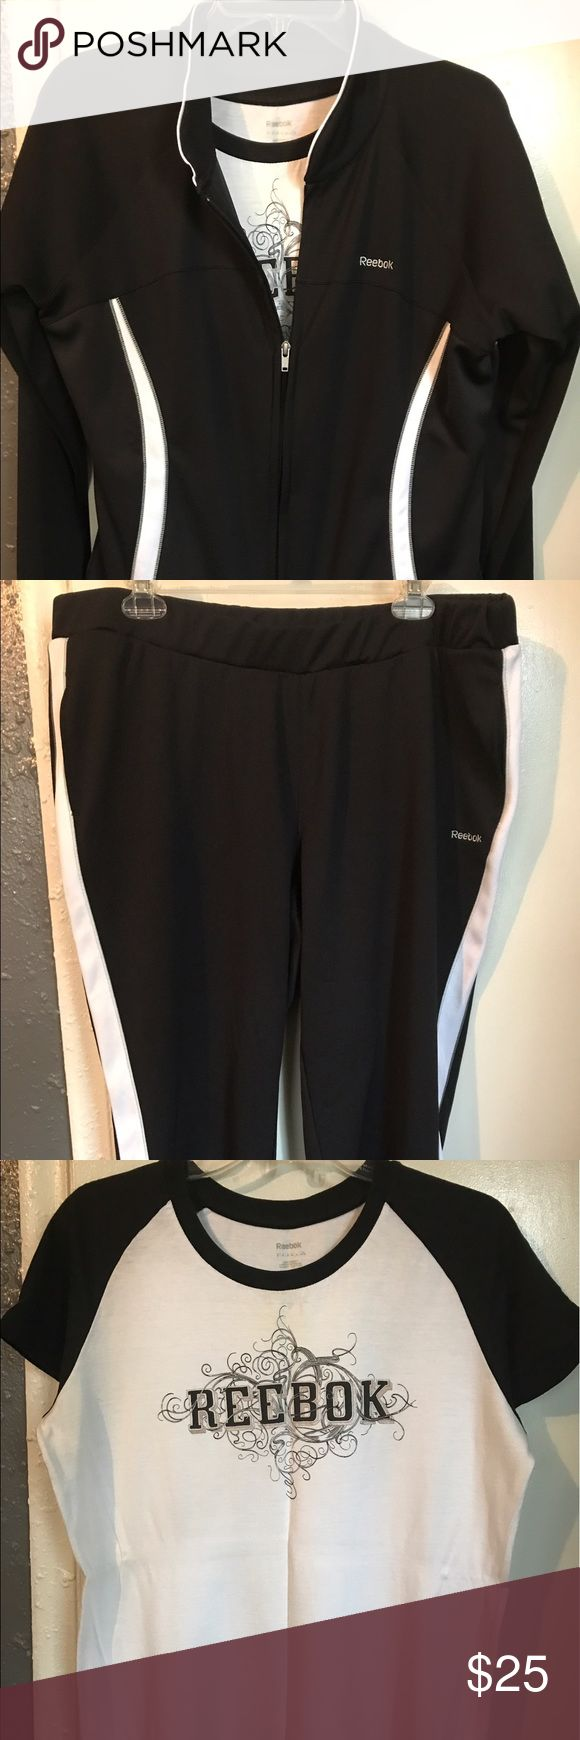 Reebok Ladies Jogger Black and White Crop Jogger. Gently Used. Very comfortable. Smoke Free Home Reebok Other